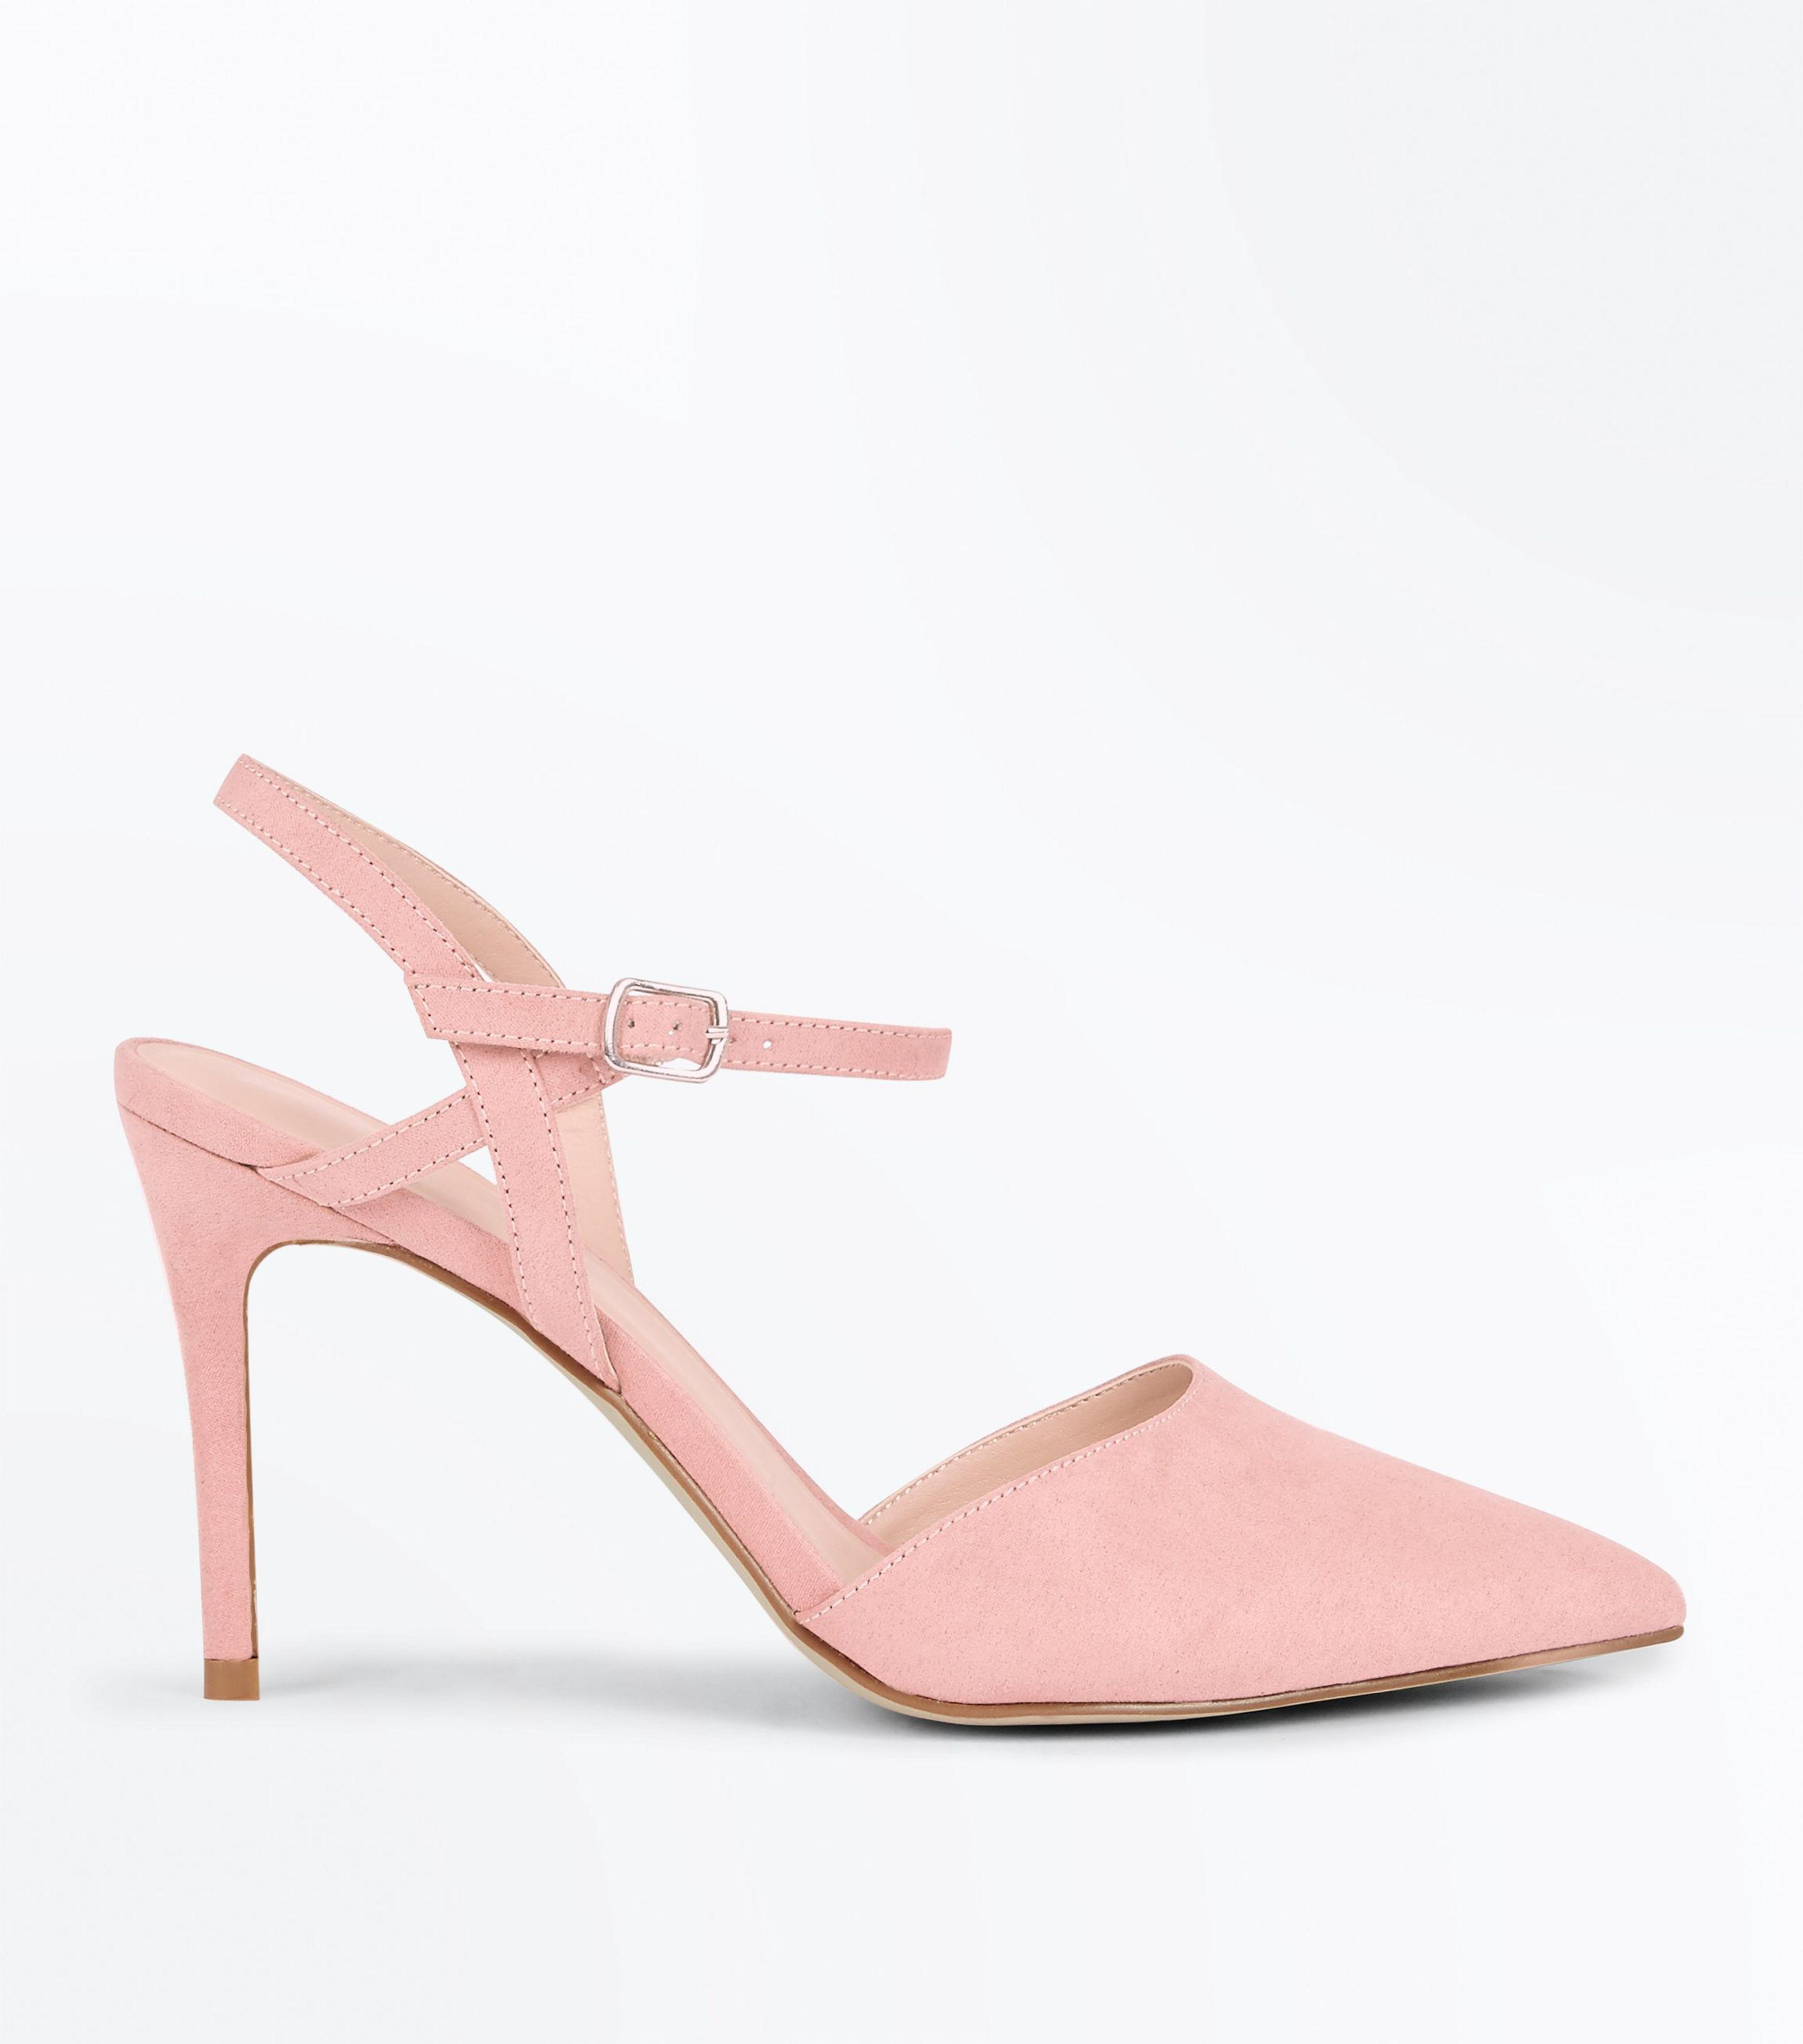 804d8ad2e72 New Look Pale Pink Suedette Ankle Strap Pointed Court Shoes